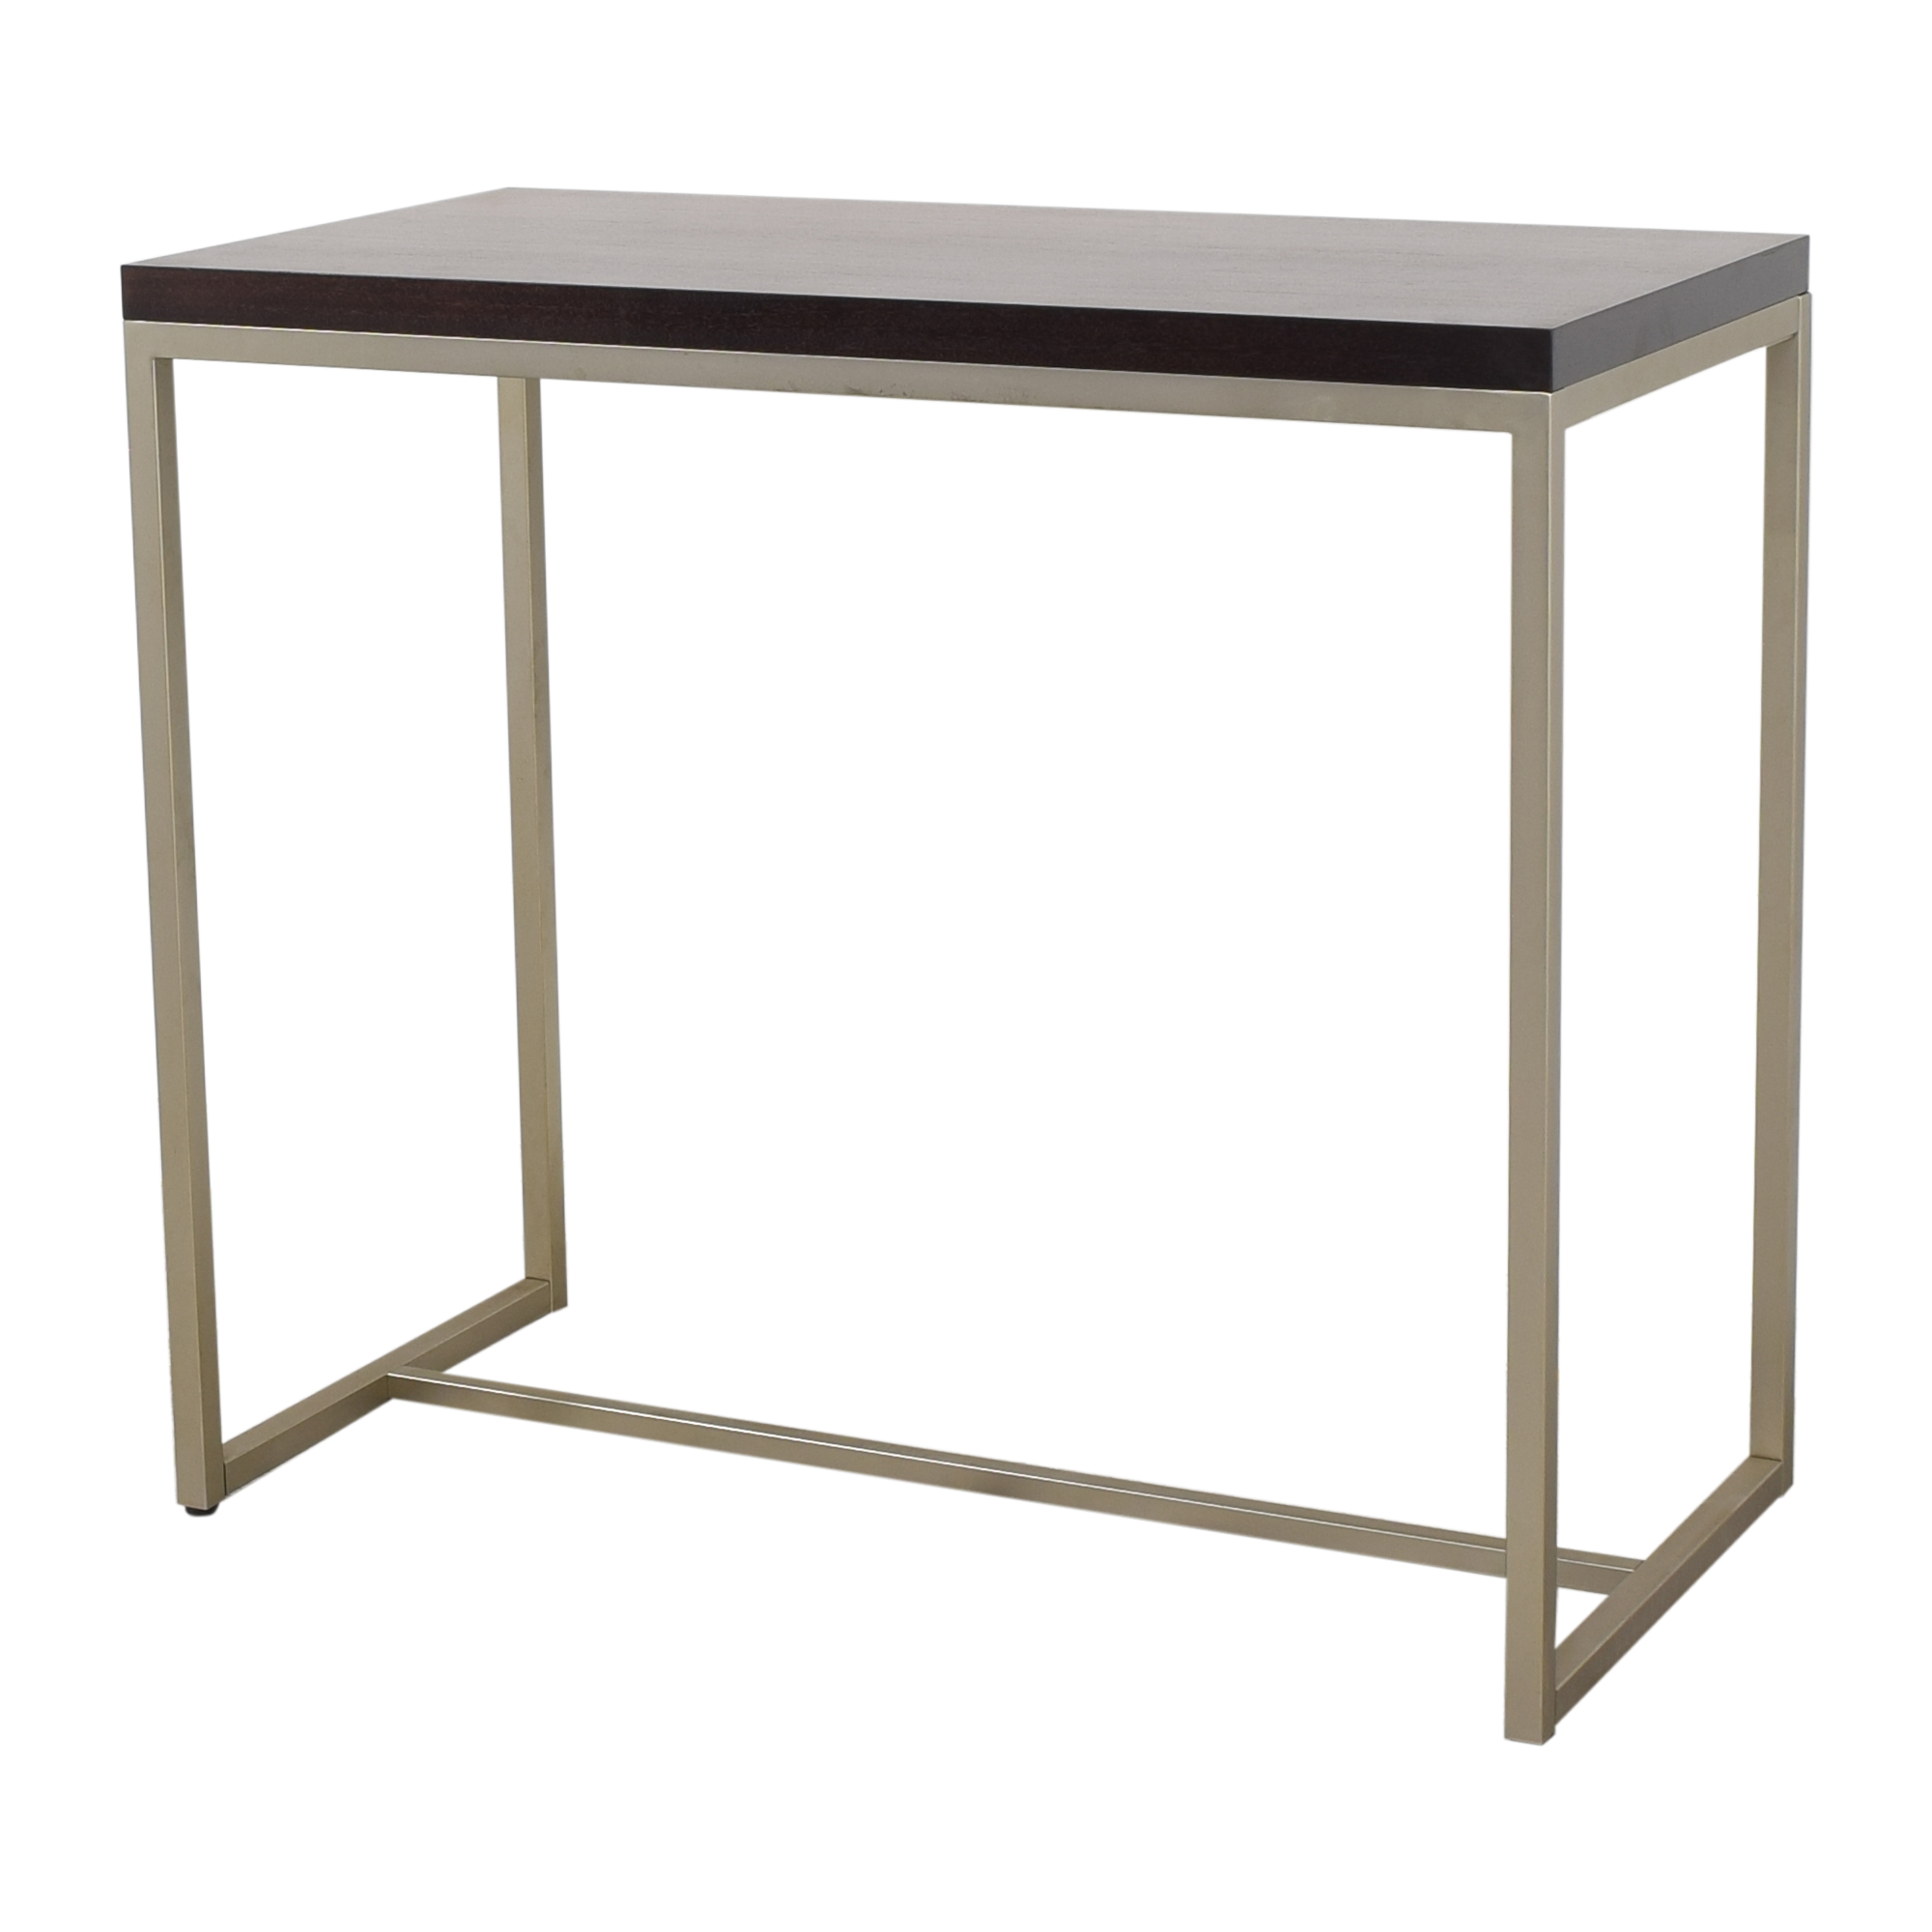 CB2 Box Frame Dining Table / Tables